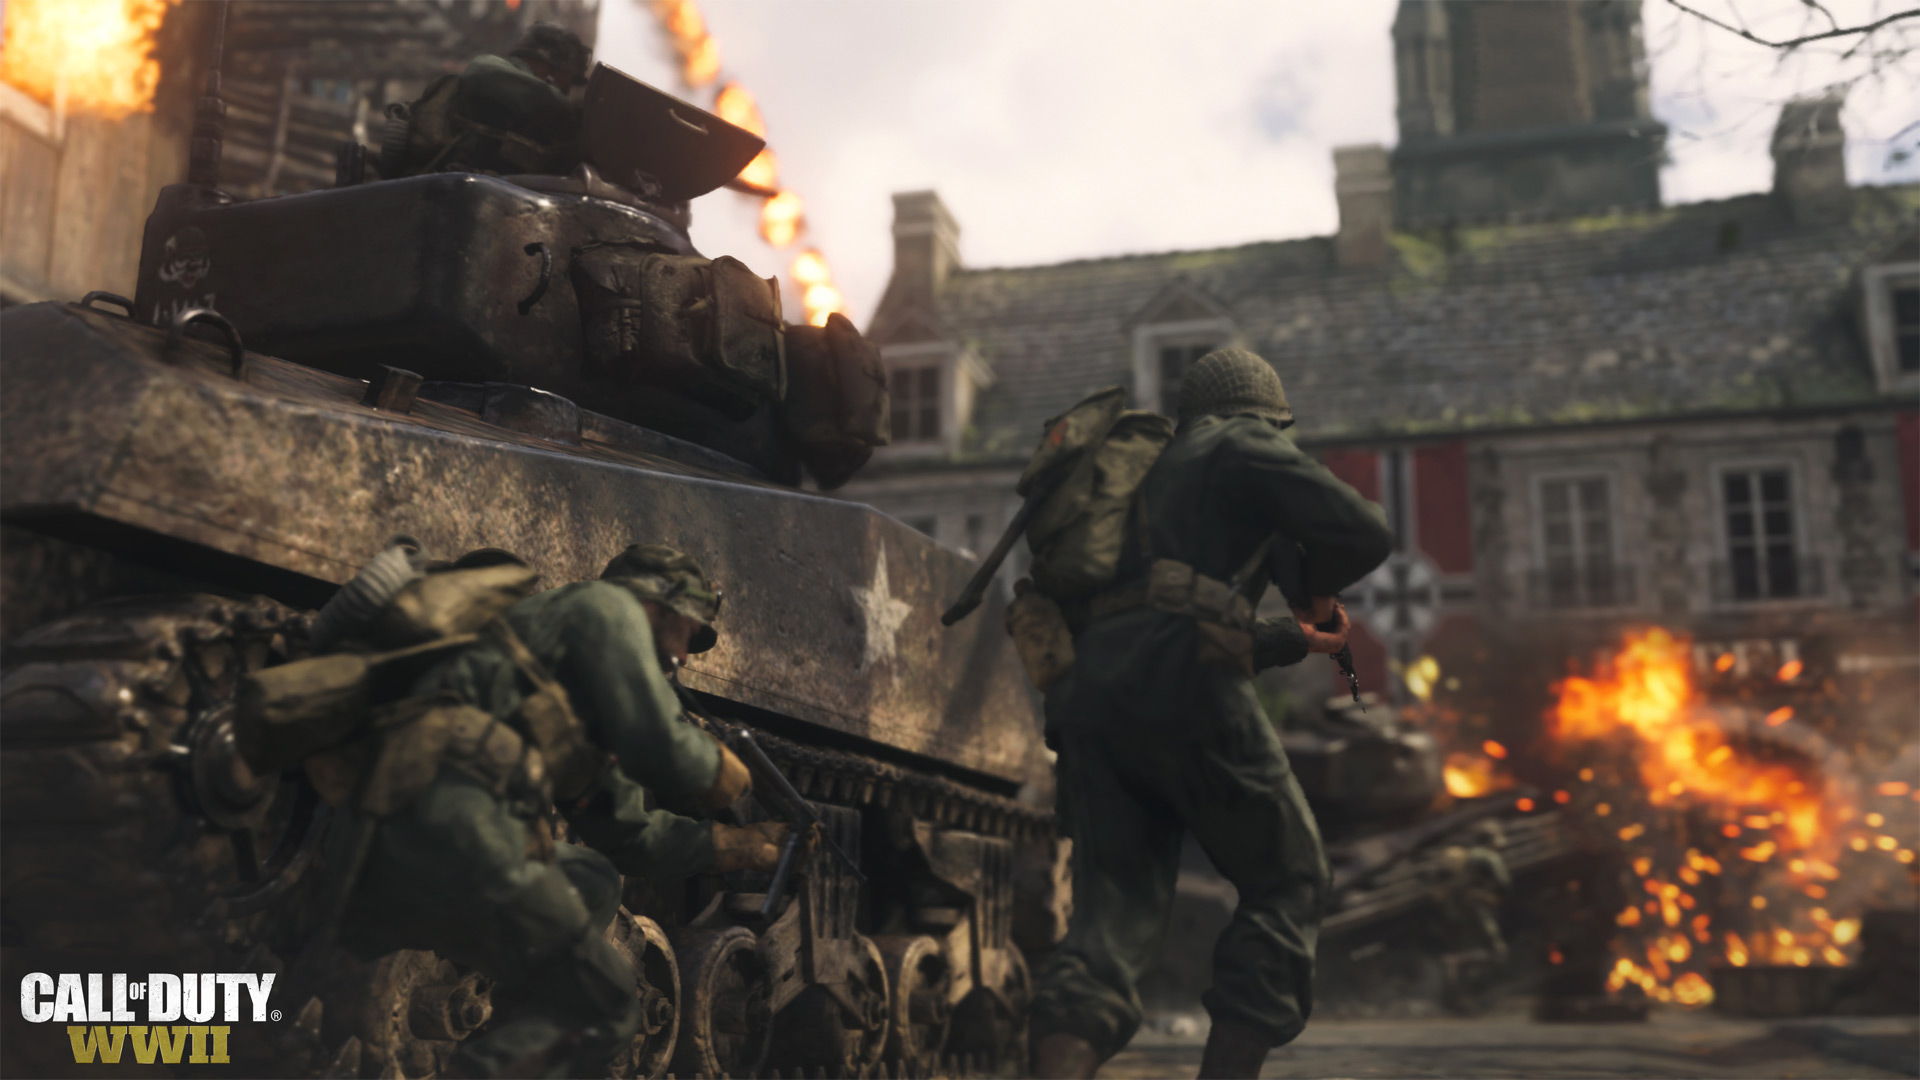 Call of Duty: WWII Multiplayer E3 2017 Impressions